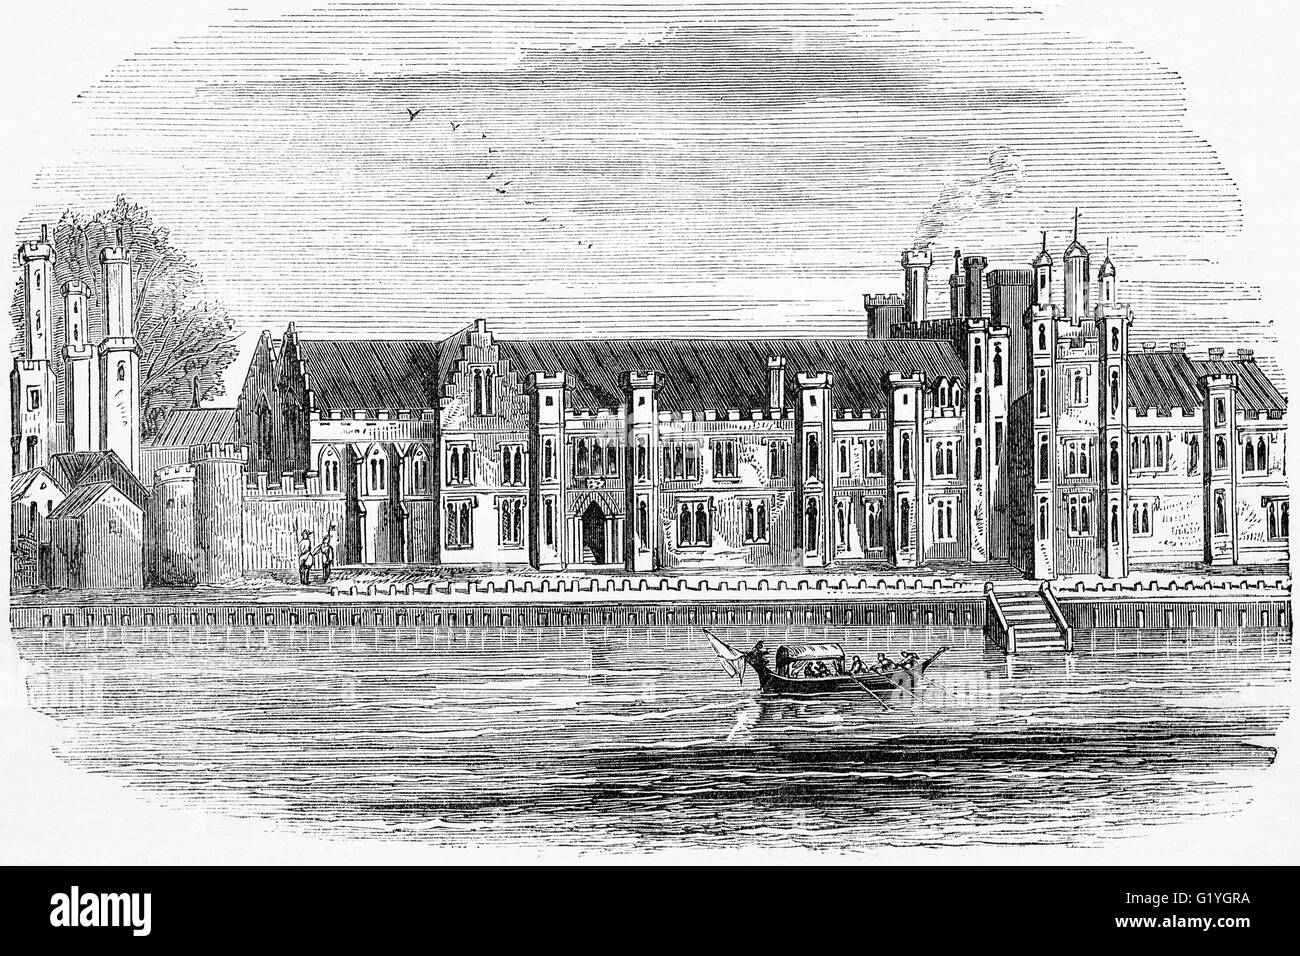 The original Greenwich Palace built by Humphrey, Duke of Gloucester, in 1443,  On the banks of the River Thames, downstream from London.